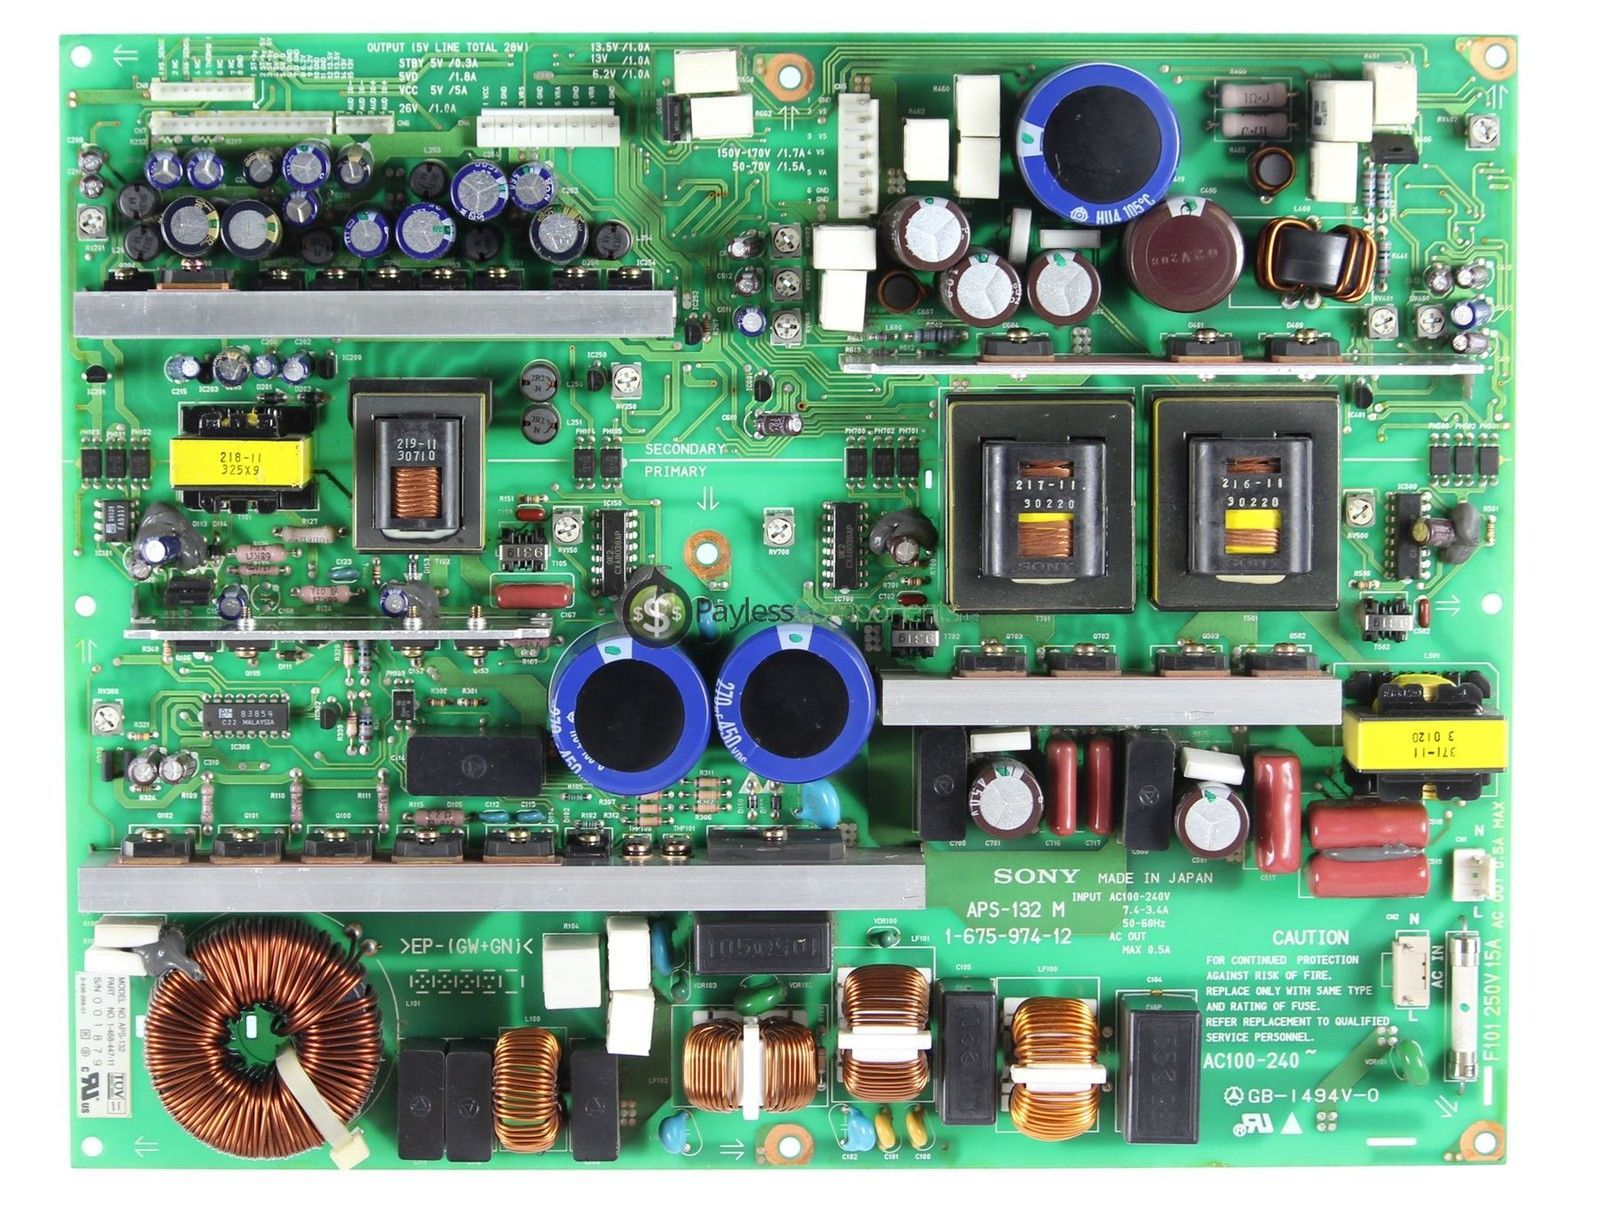 Sony 1-468-447-11 Power Supply Board APS-132 M PFM-42B1 PFM-510